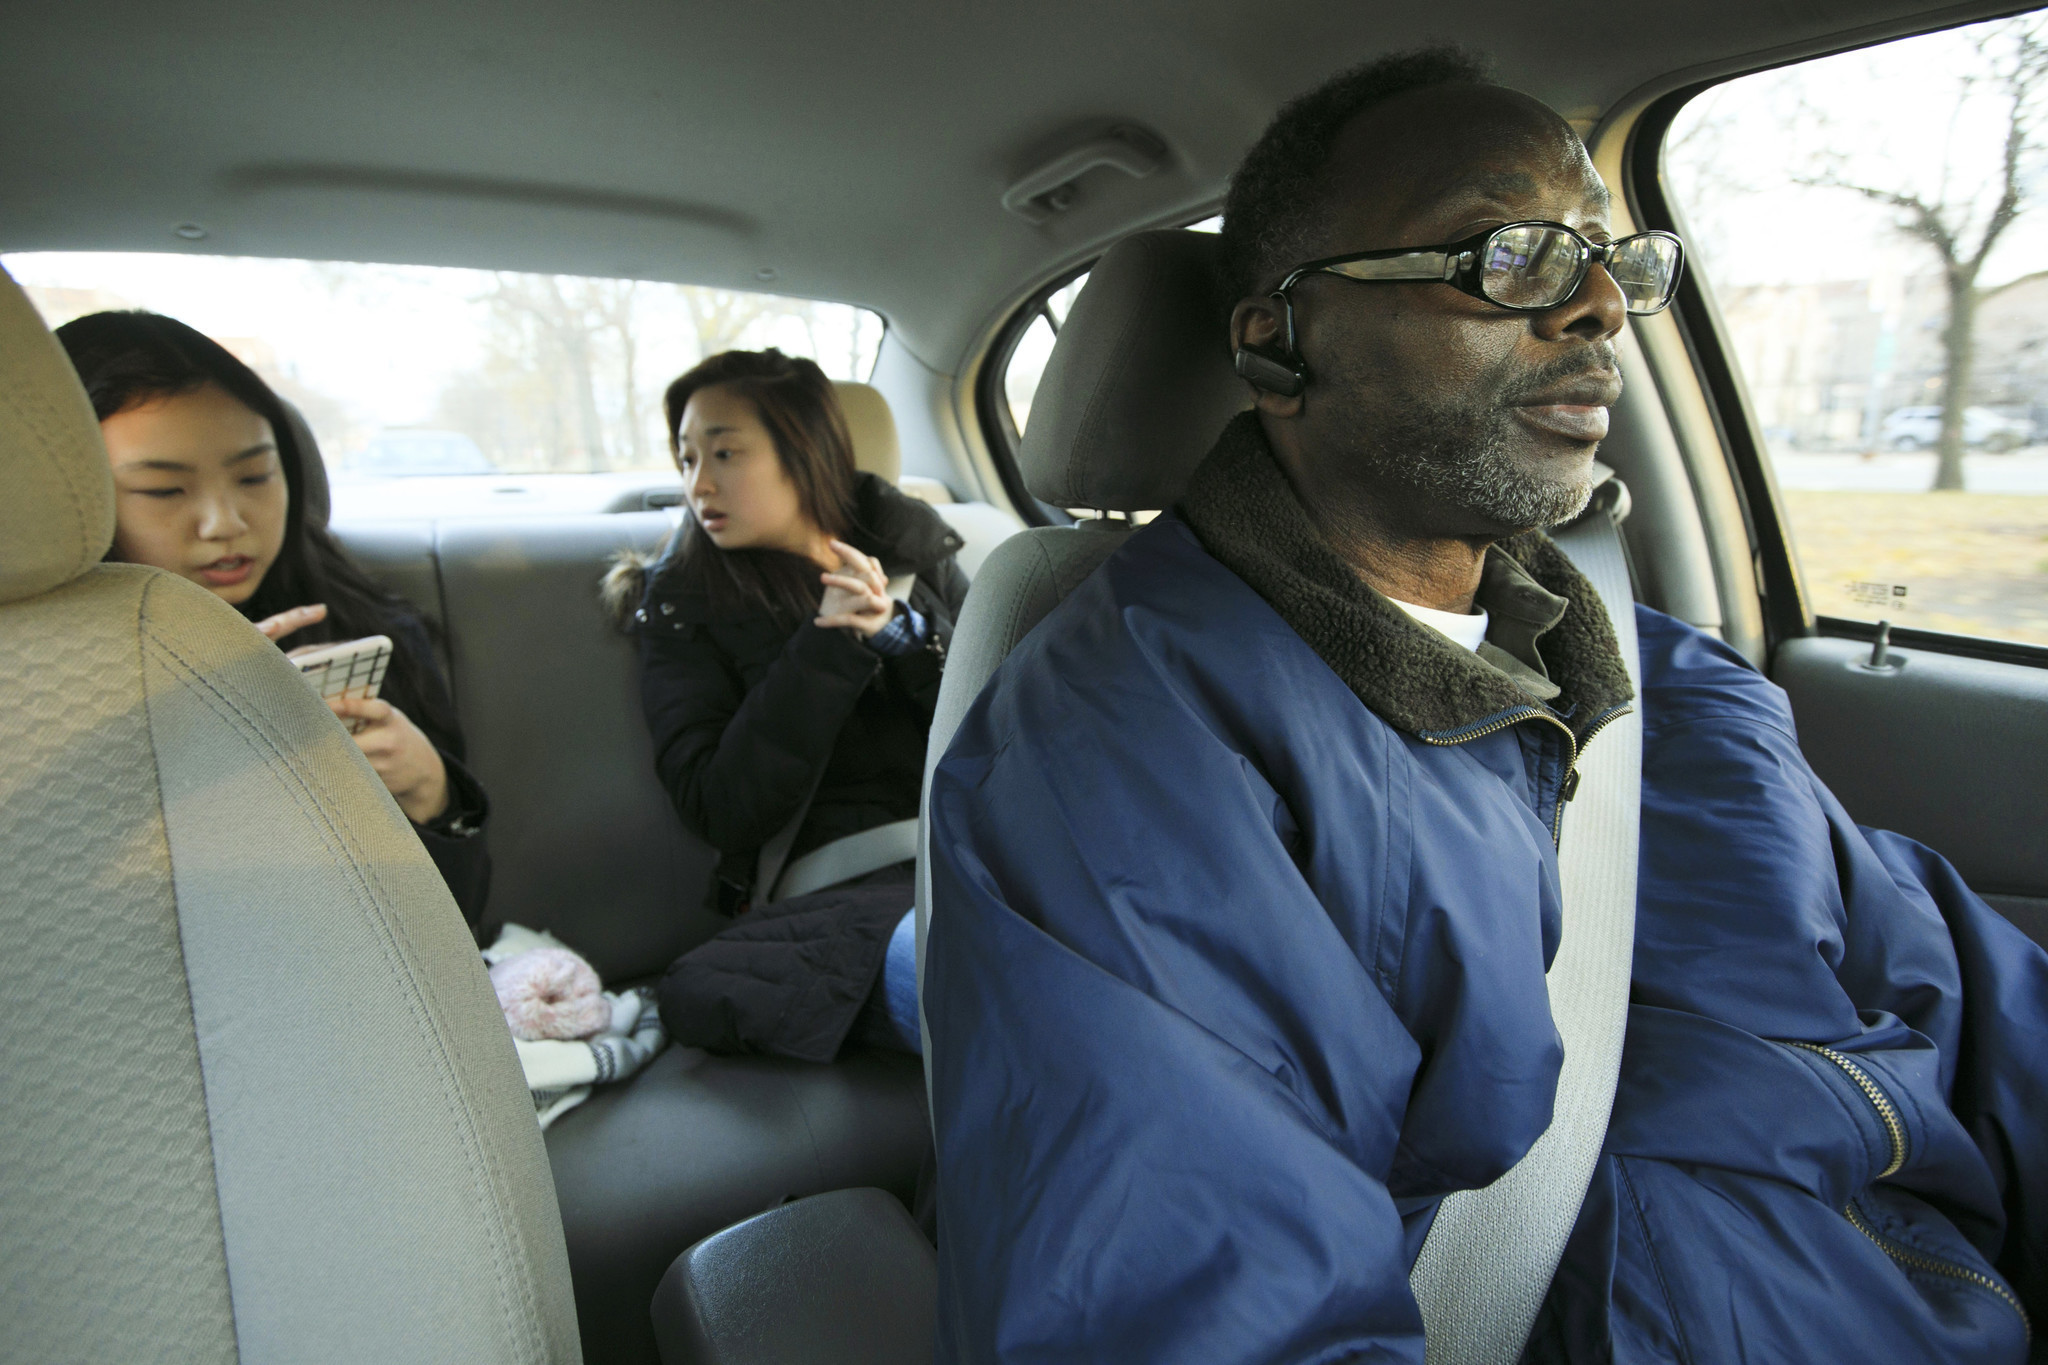 Chicagoans Can Now Take Uber Carpools With Pre Tax Commuter Benefits